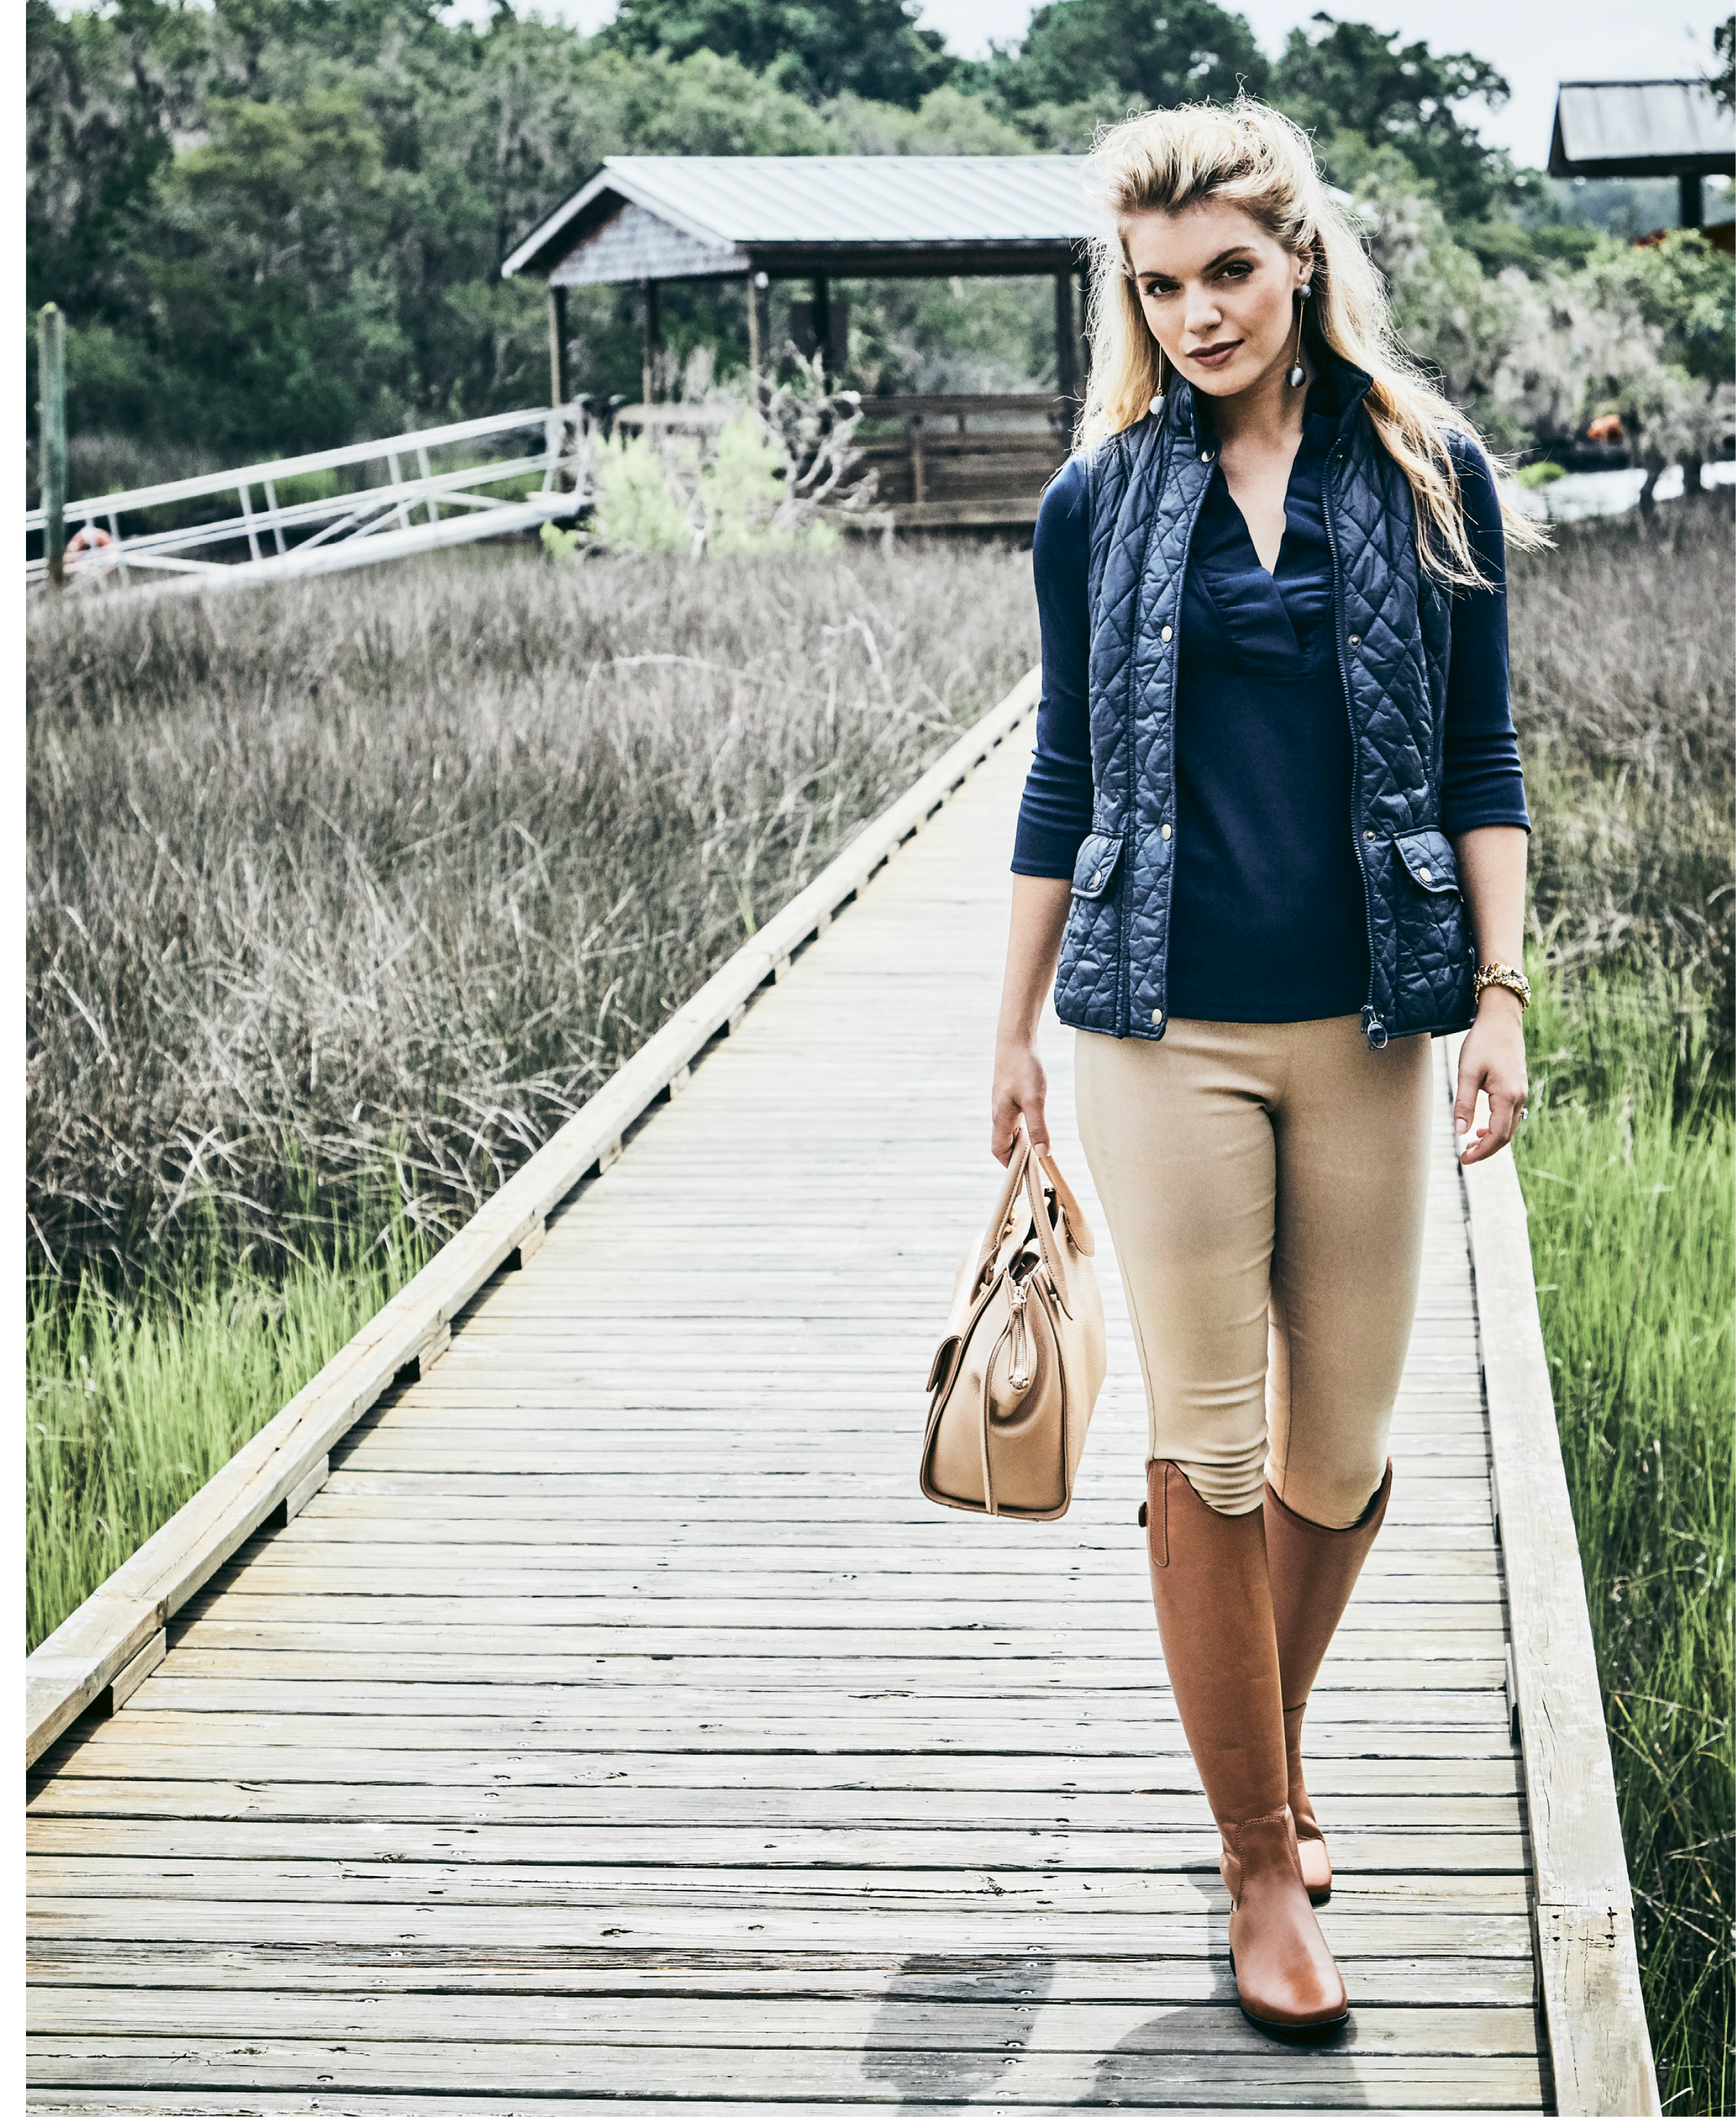 """Vest Dressed - Gretchen Scott jersey """"Ruffneck"""" top in """"navy,"""" $99, and Gretchen Scott spandex pant, $109, both at Gretchen Scott; Barbour """"Otterburn Gilet"""" vest in """"navy,"""" $129 at M. Dumas & Sons; Modern silver ball drop earrings, $38 at Tara Grinna Swimwear; estate 14K gold, sapphire, and pearl bracelet, $8,500 at Croghan's Jewel Box; Sommer """"Athen"""" tall leather boots, $300 at Bits & Pieces."""